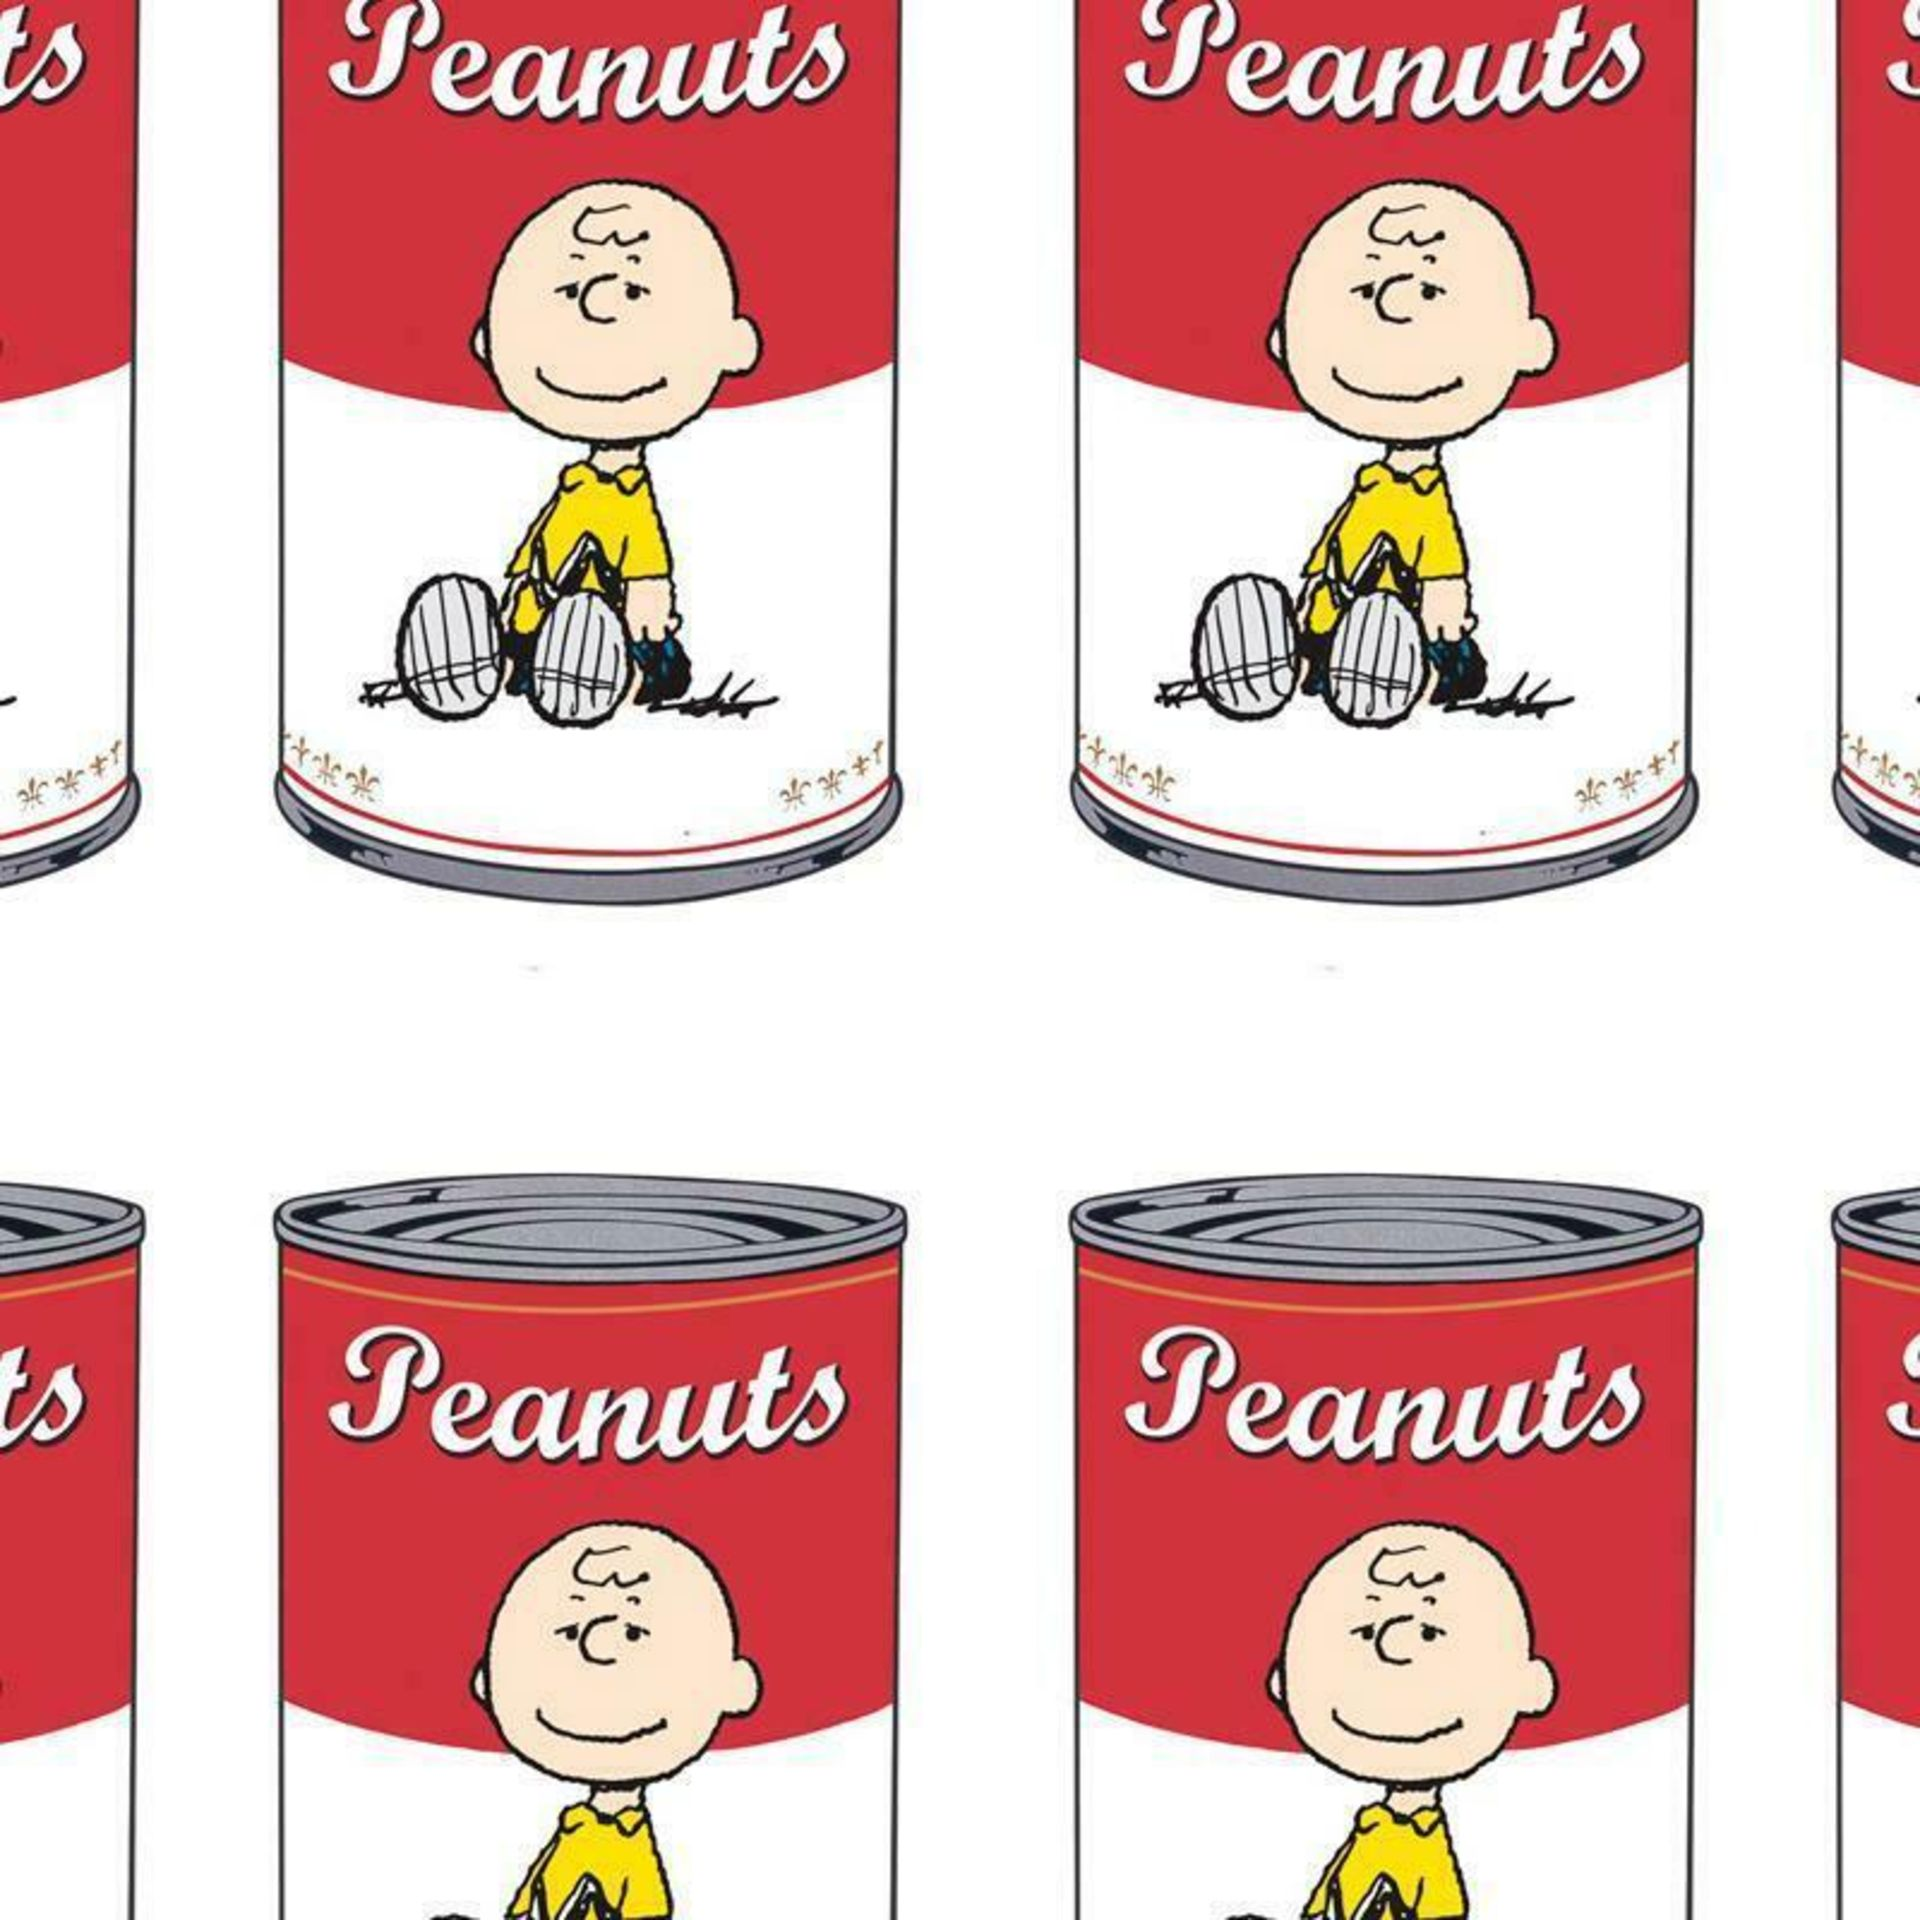 Peanuts Can by Peanuts - Image 2 of 2